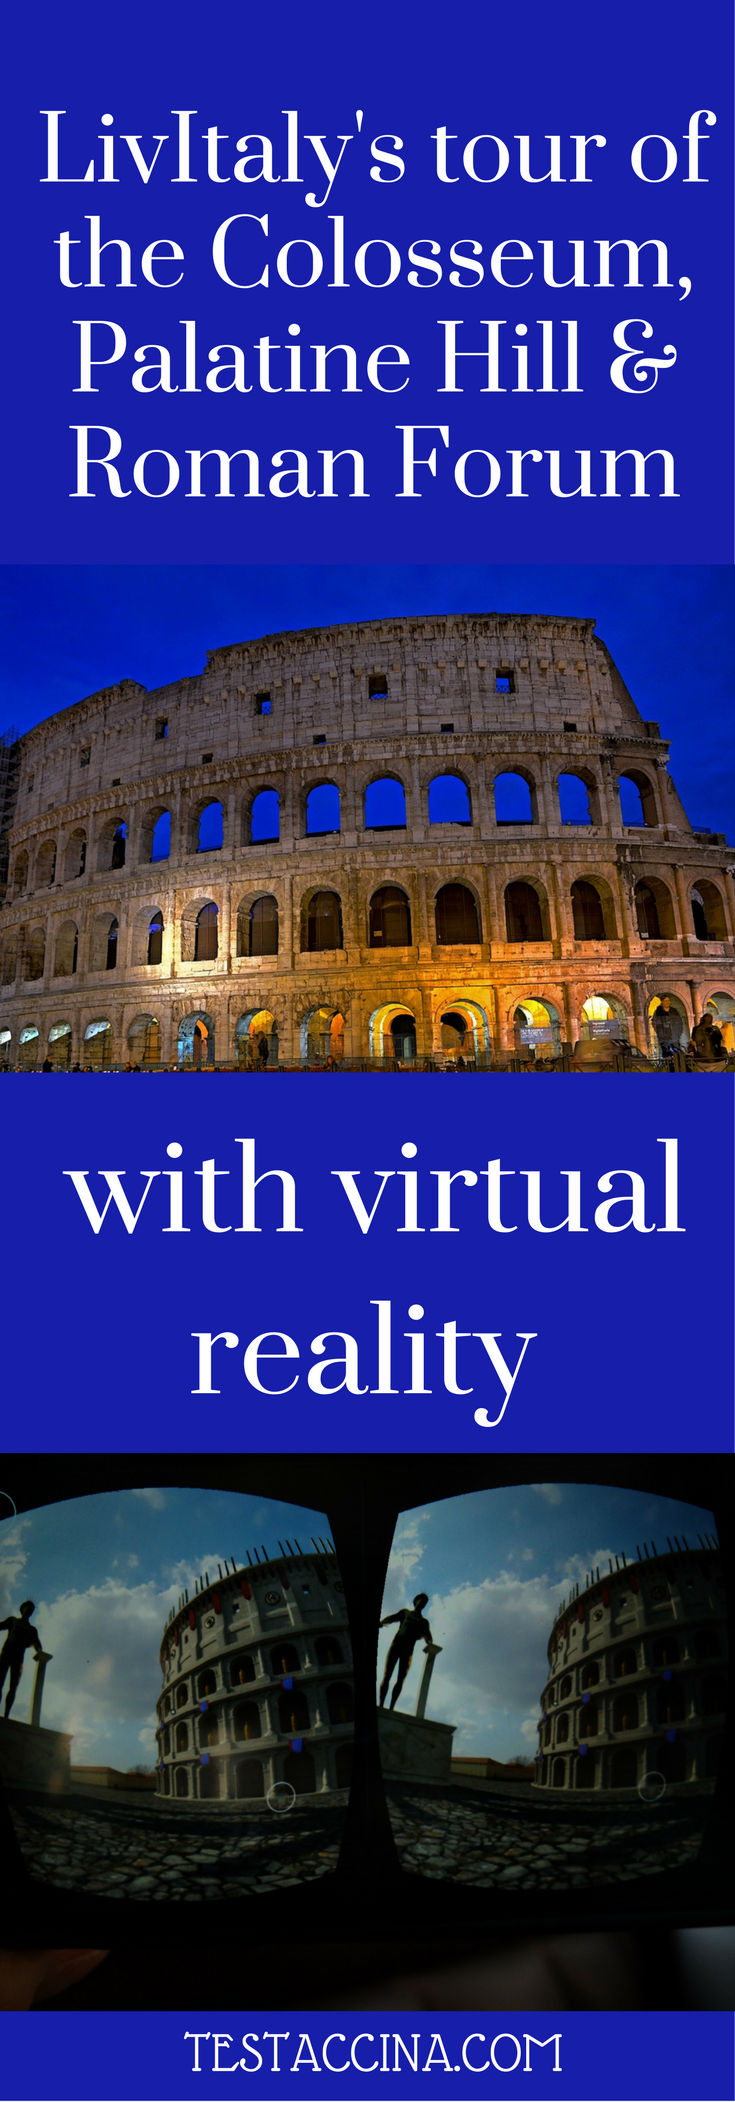 Tour company LivItaly has introduced virtual reality goggles to its Colosseum, Palatine Hill and Roman Forum tour, enabling travellers to step back in time. I went along to find out more!